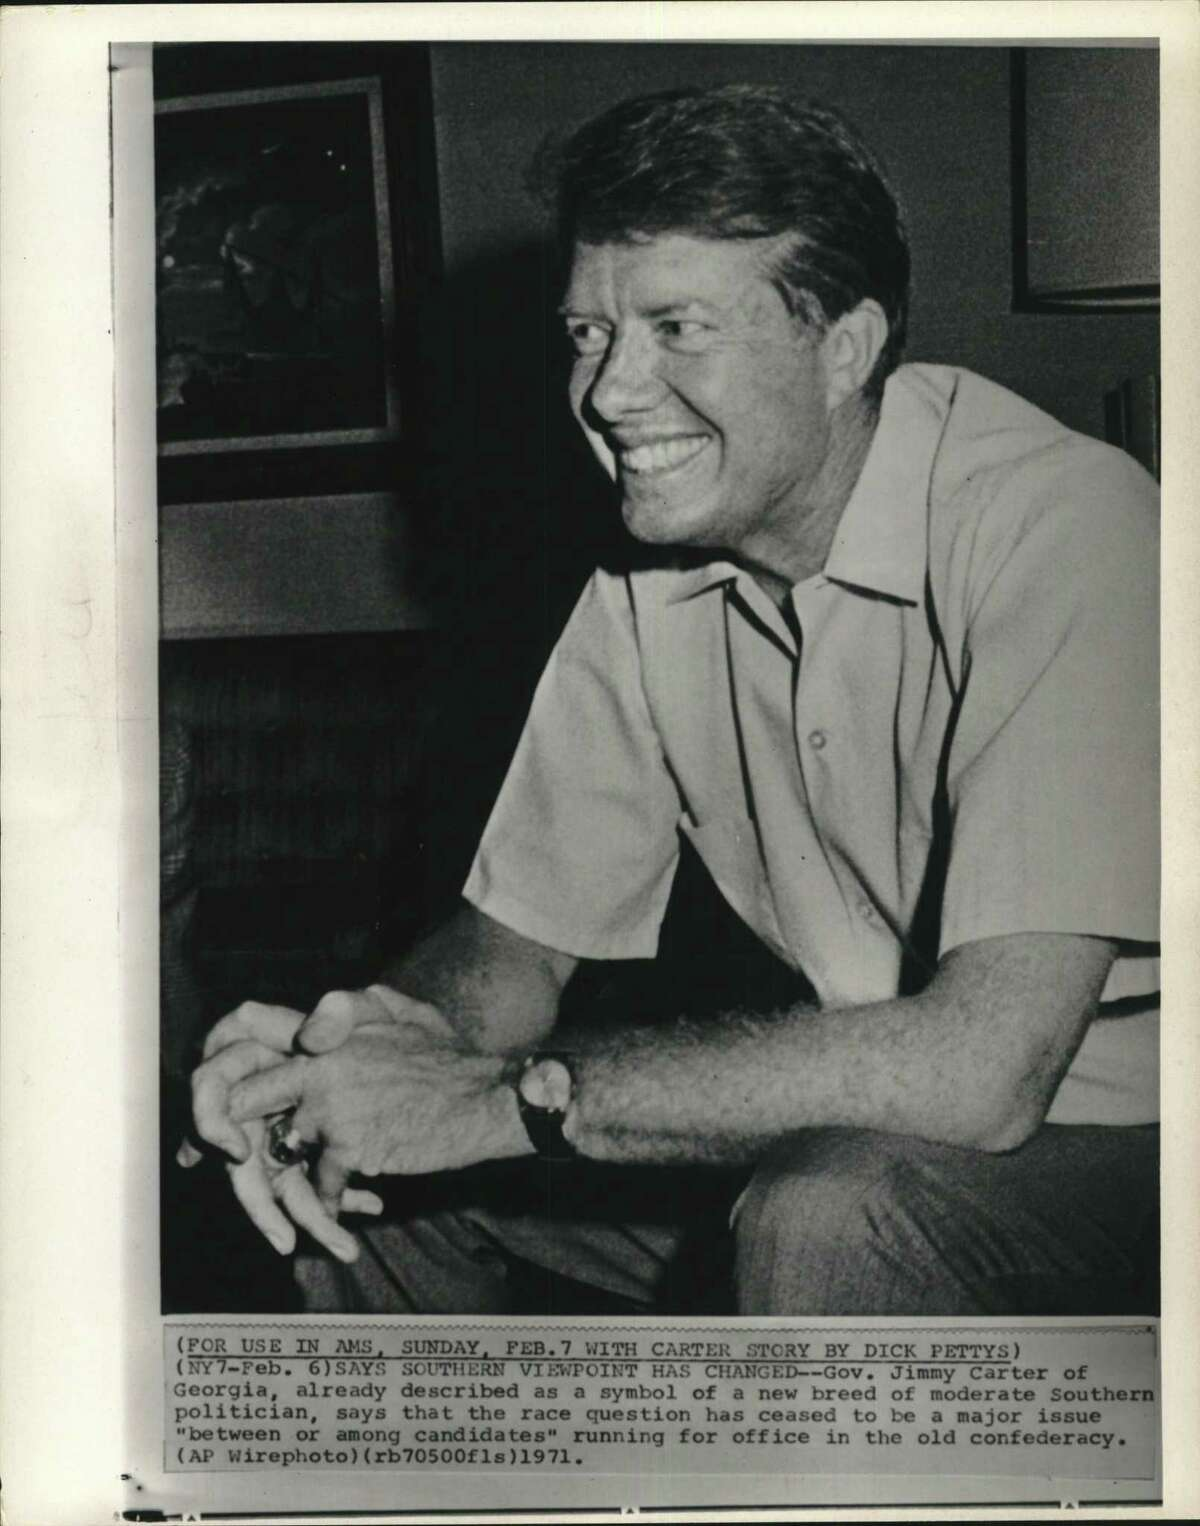 Carter, Jimmy (Governor) (Georgia). Governor Jimmy Carter of Georgia, already described as a symbol of a new breed of moderate Southern politician, says that the race question has ceased to be a major issue